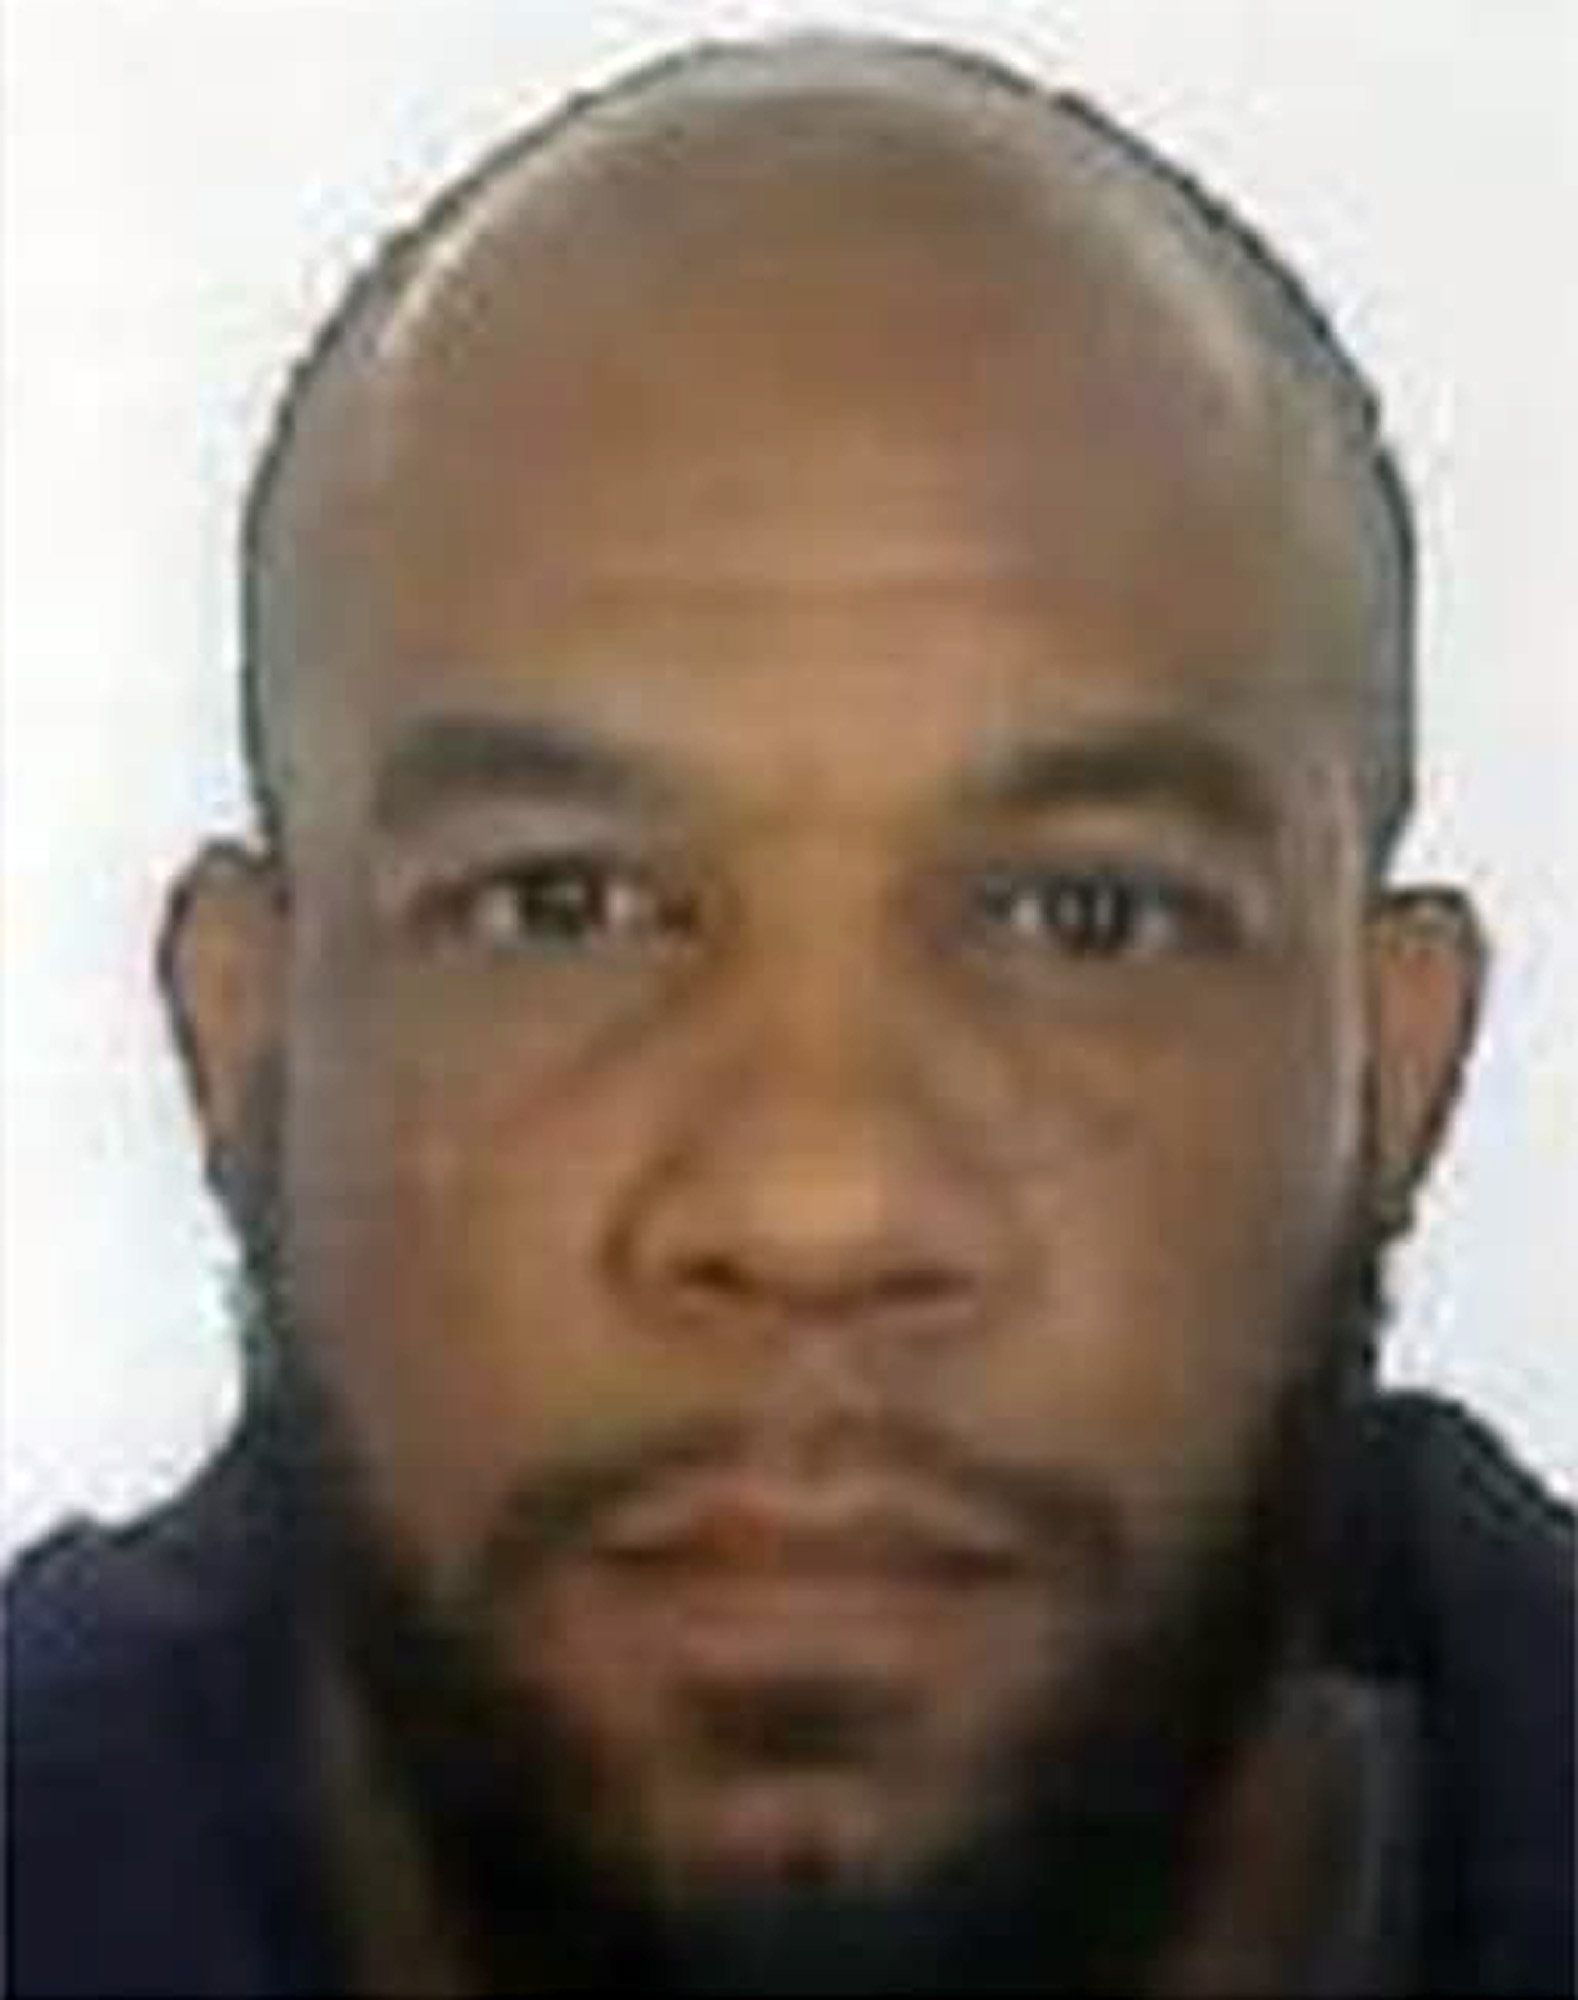 Undated Metropolitan Police handout photo of Westminster attacker Khalid